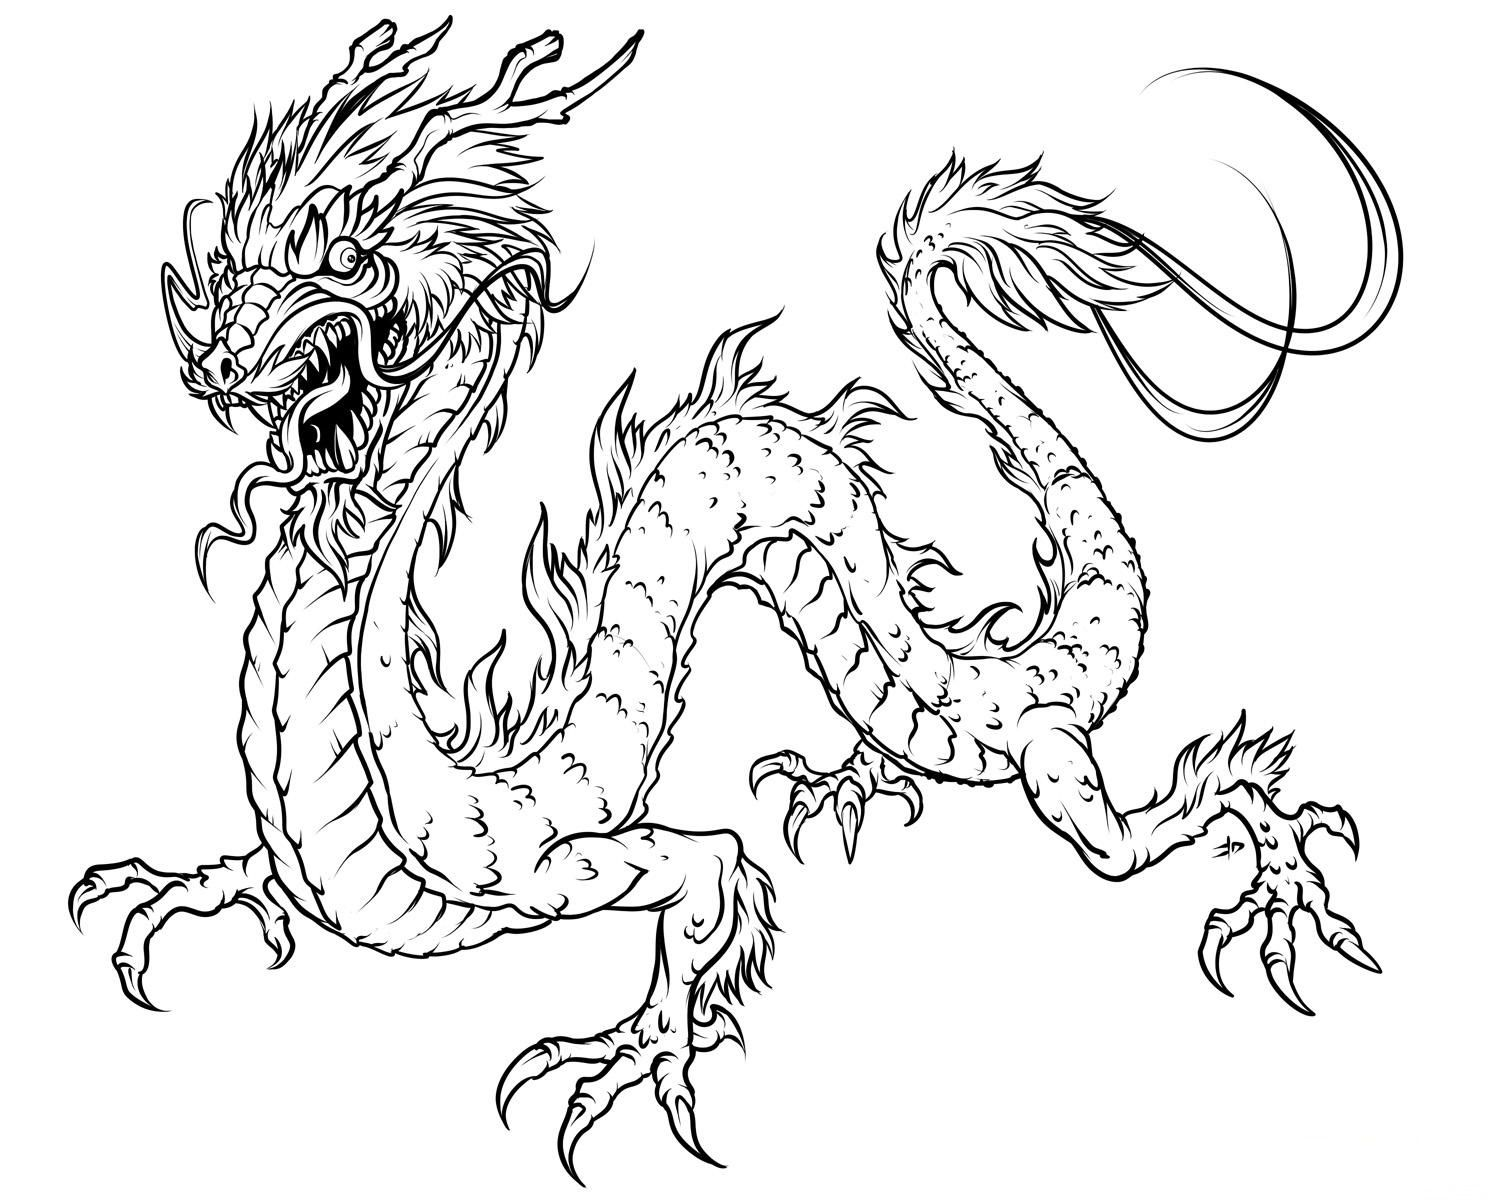 Attirant Get The Latest Free Dragon Coloring Pages Printable Images, Favorite  Coloring Pages To Print Online By ONLY COLORING PAGES.